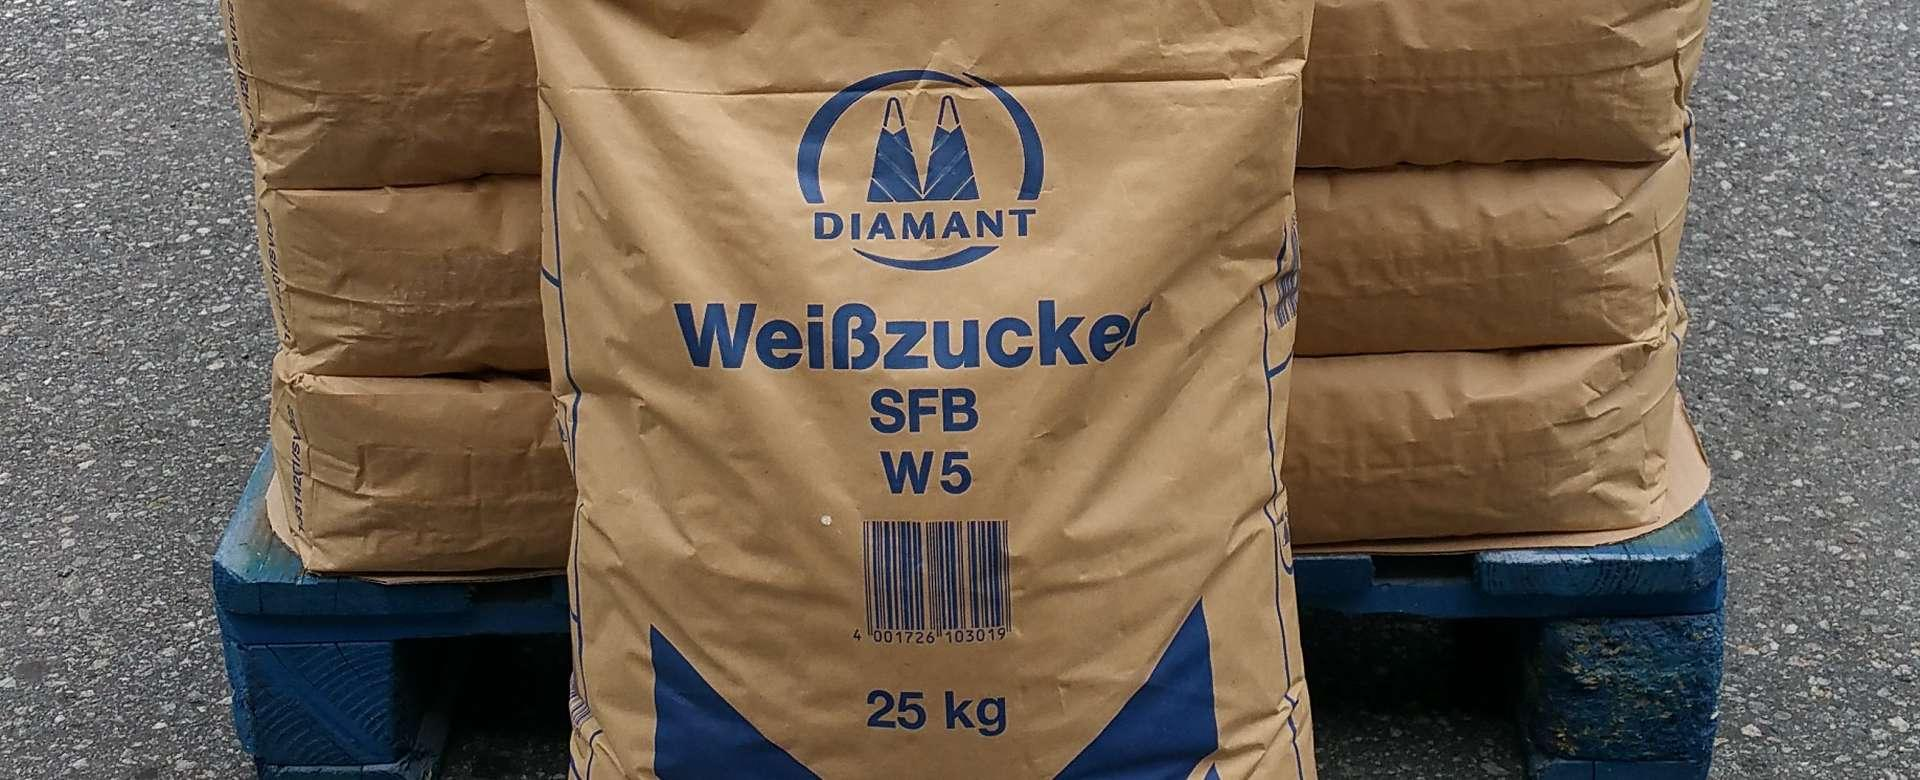 ZUCKERAKTION